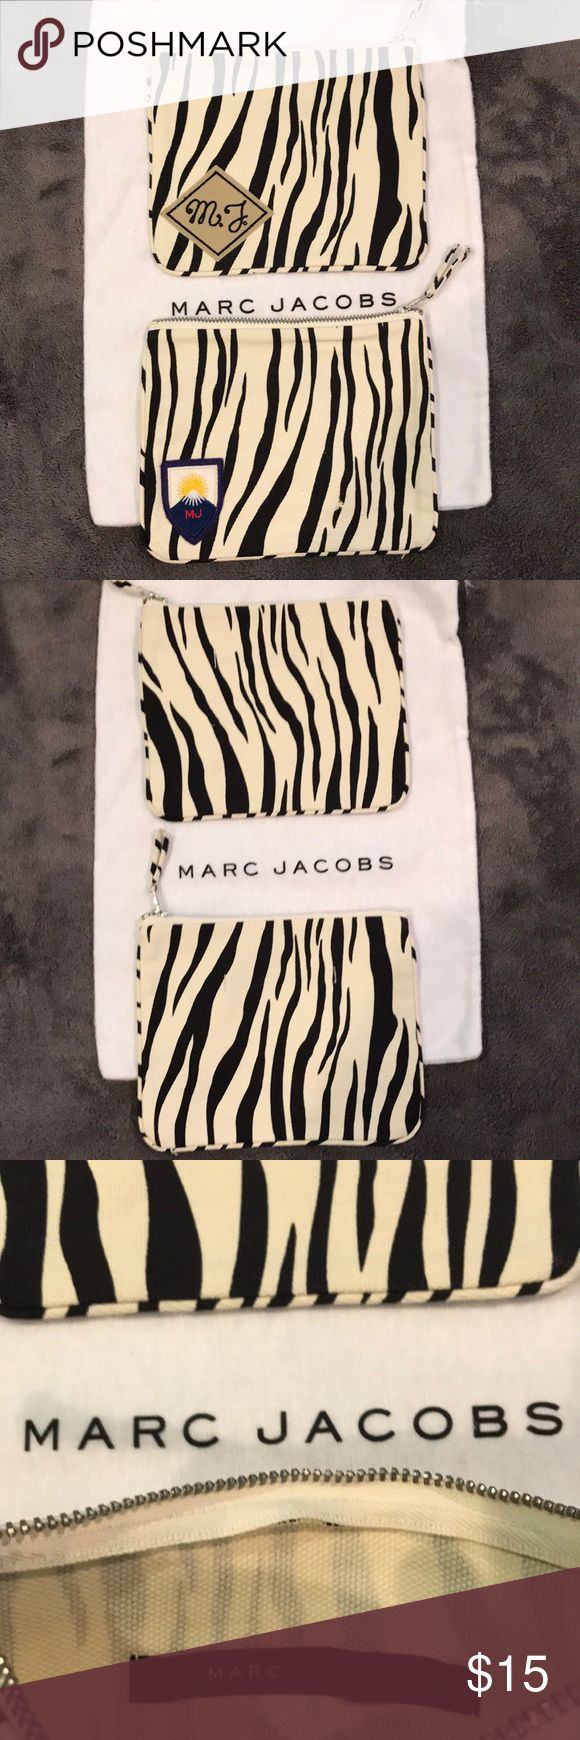 Marc Jacobs Zebra Print Cloth Bag Authentic Marc Jacobs Zebra Print Cloth Bag never been used in excellent condition.  $15 each // or // 2 for $20 (while supplies last) Marc By Marc Jacobs Bags